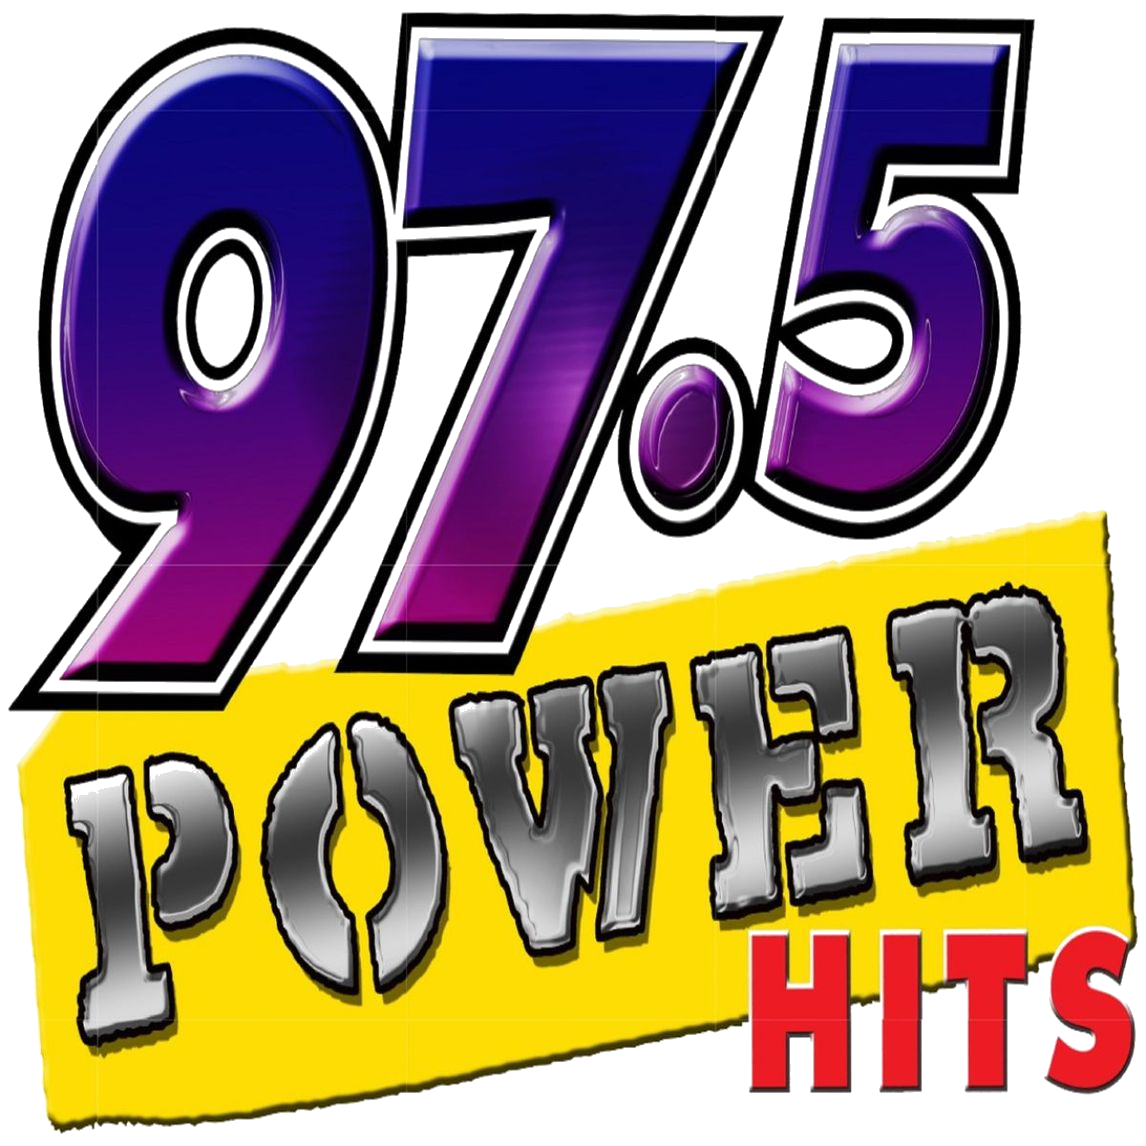 97.5 Power Hits